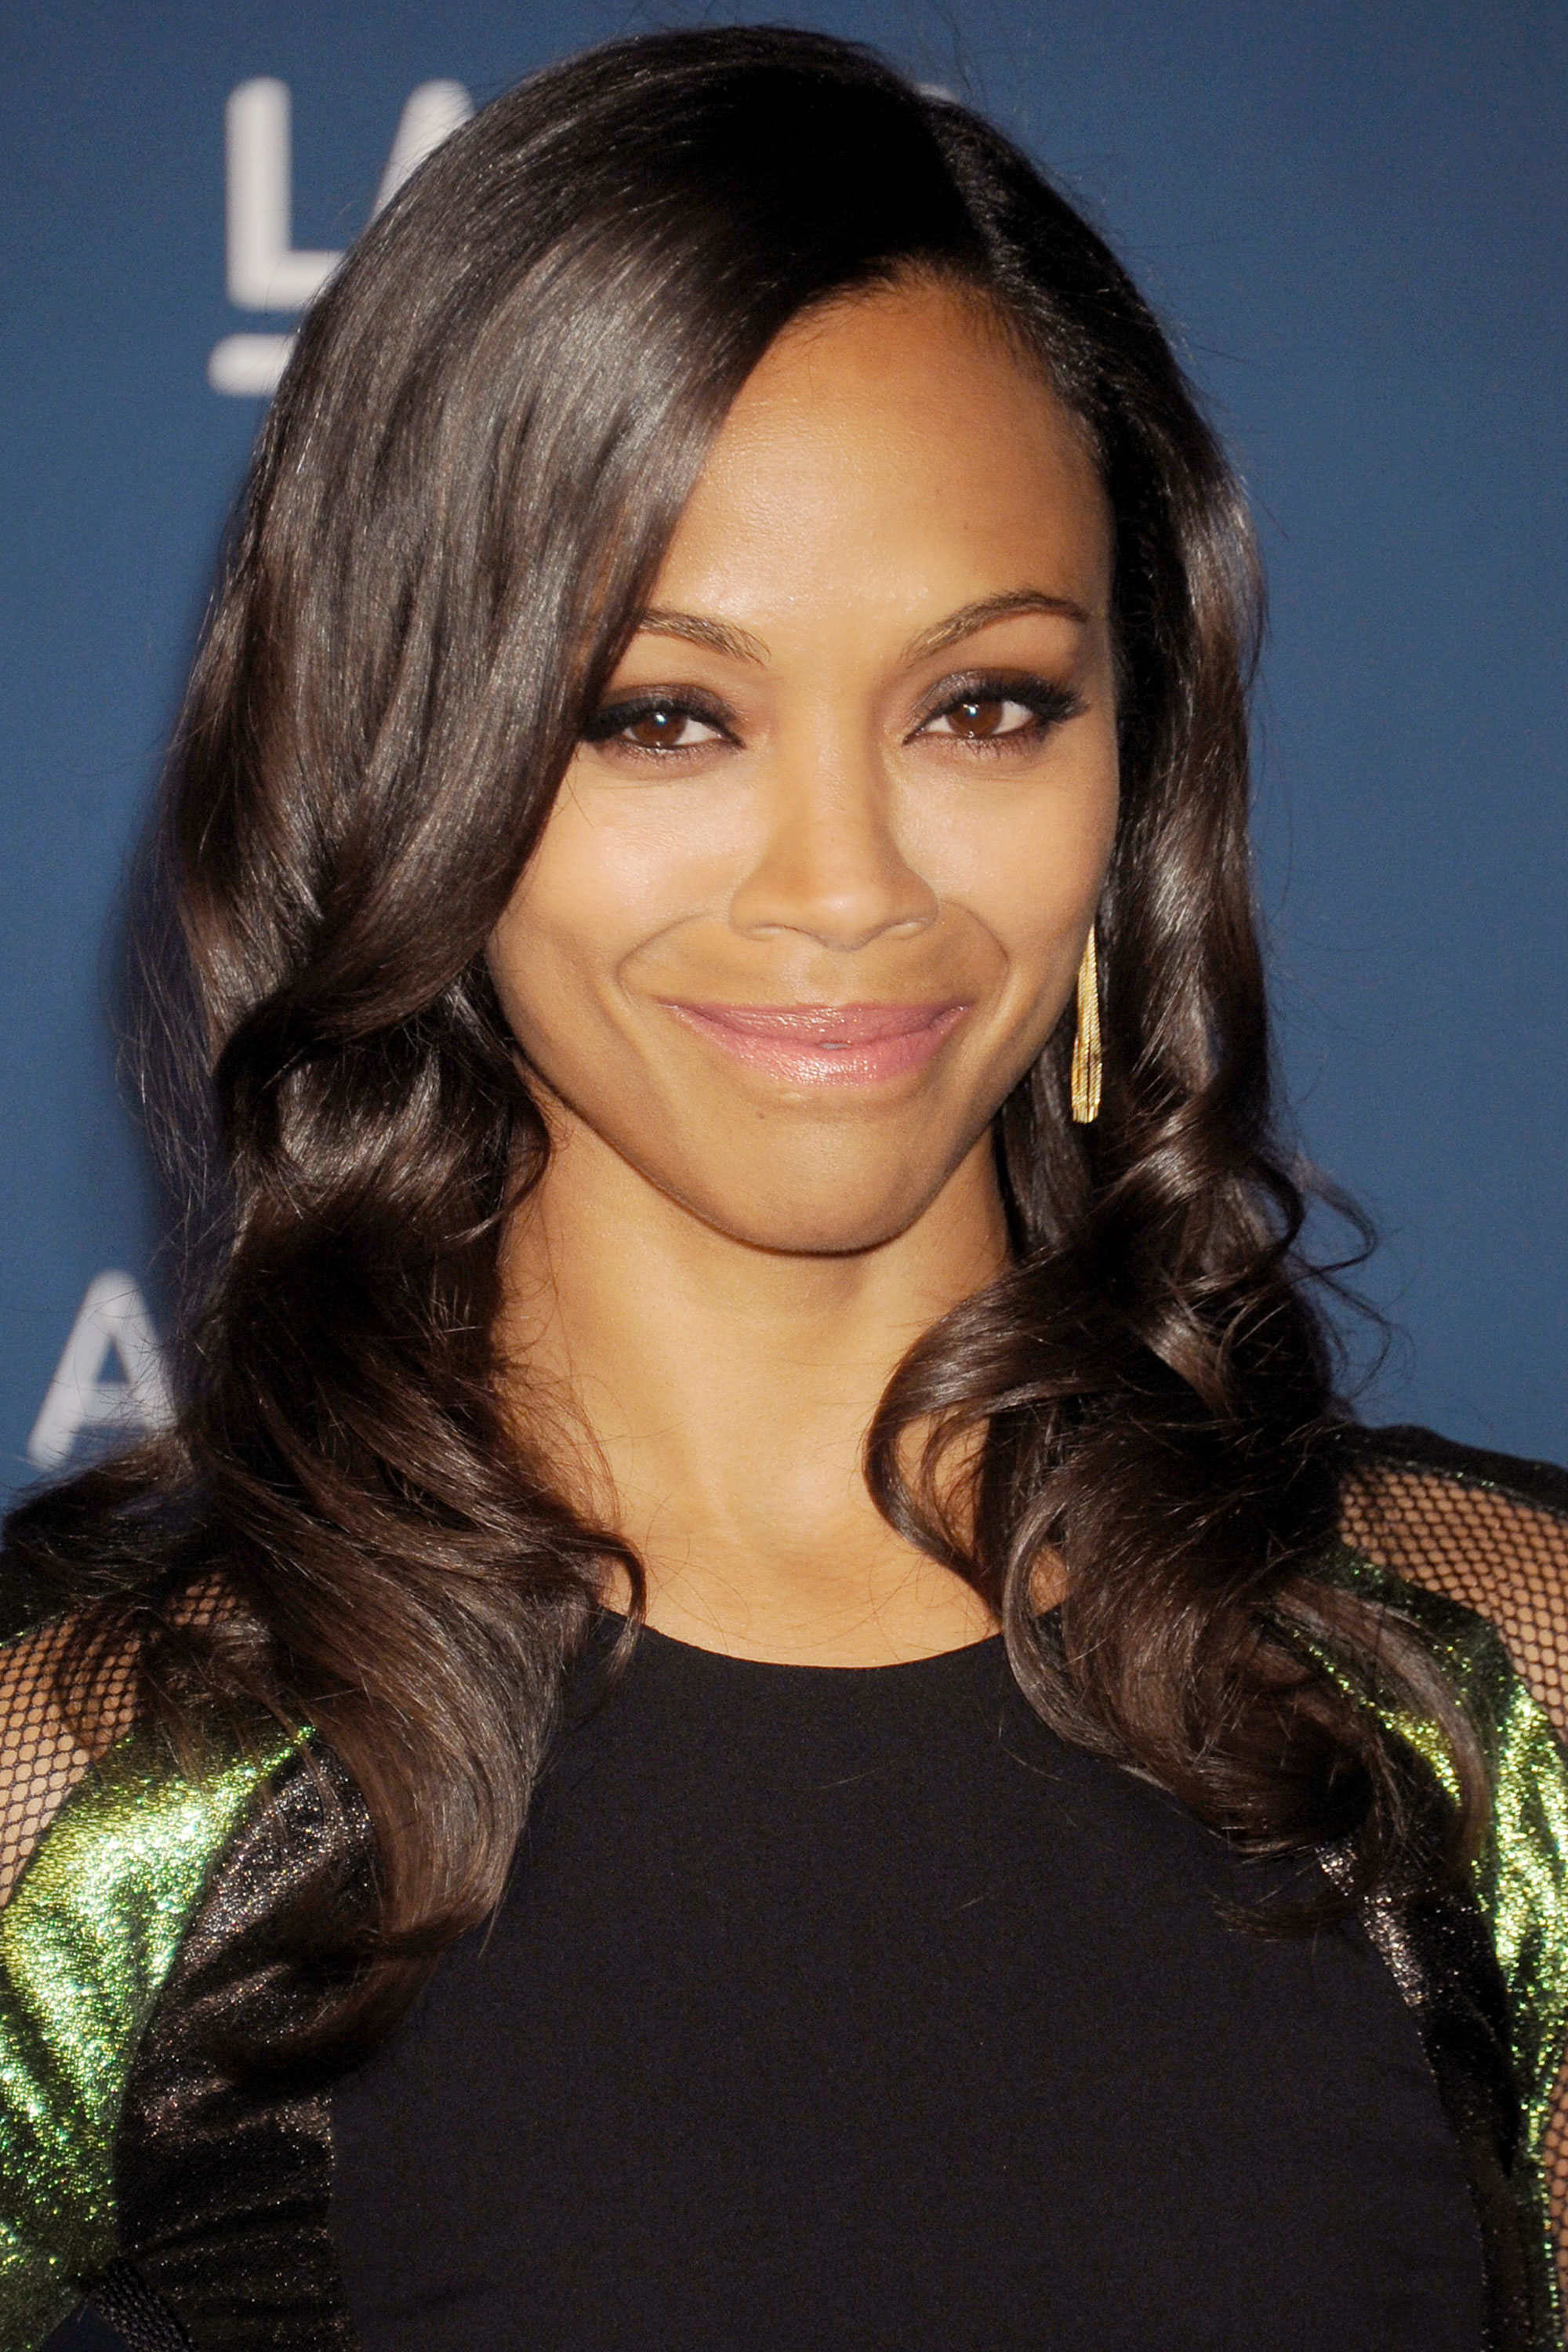 Astonishing 33 Best Medium Hairstyles Celebrities With Shoulder Length Haircuts Short Hairstyles For Black Women Fulllsitofus